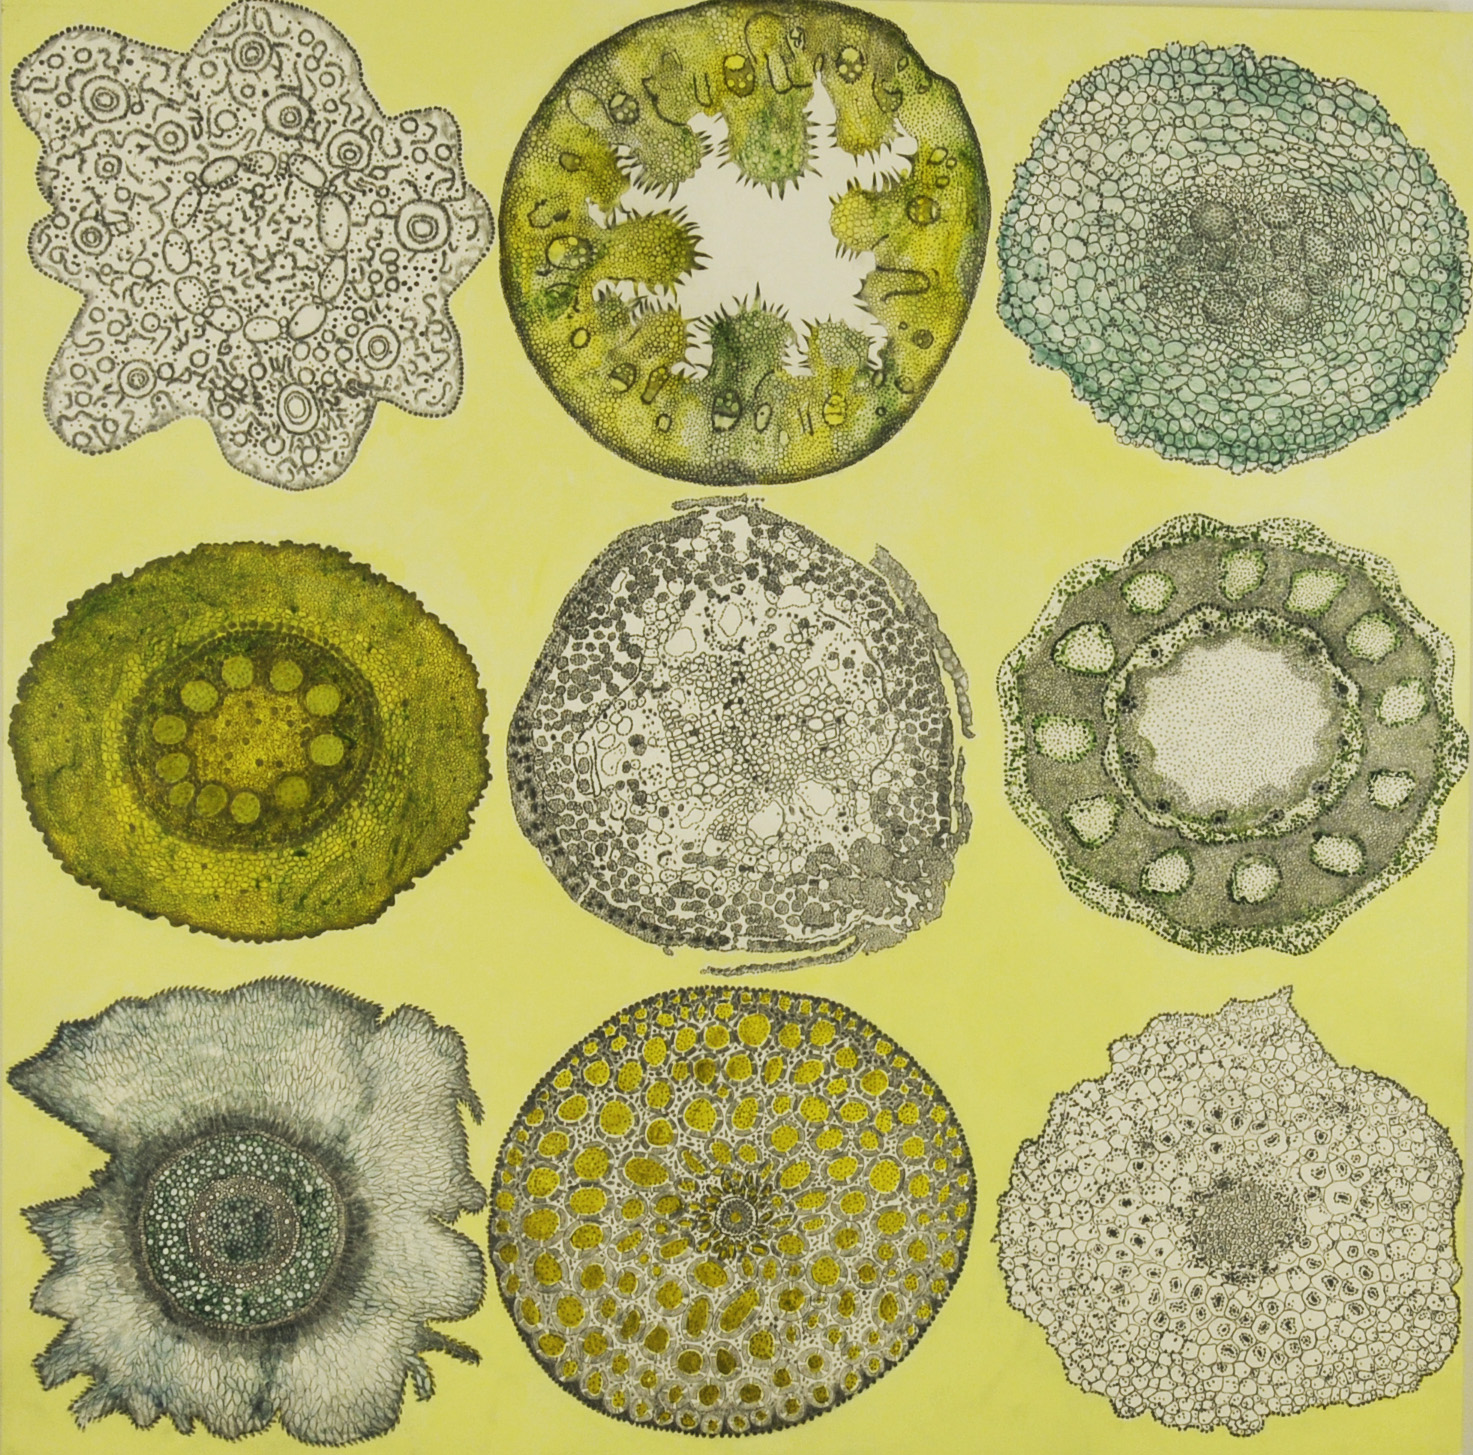 Plant Cell Patterns #1, acrylic and graphite on panel, 30x30